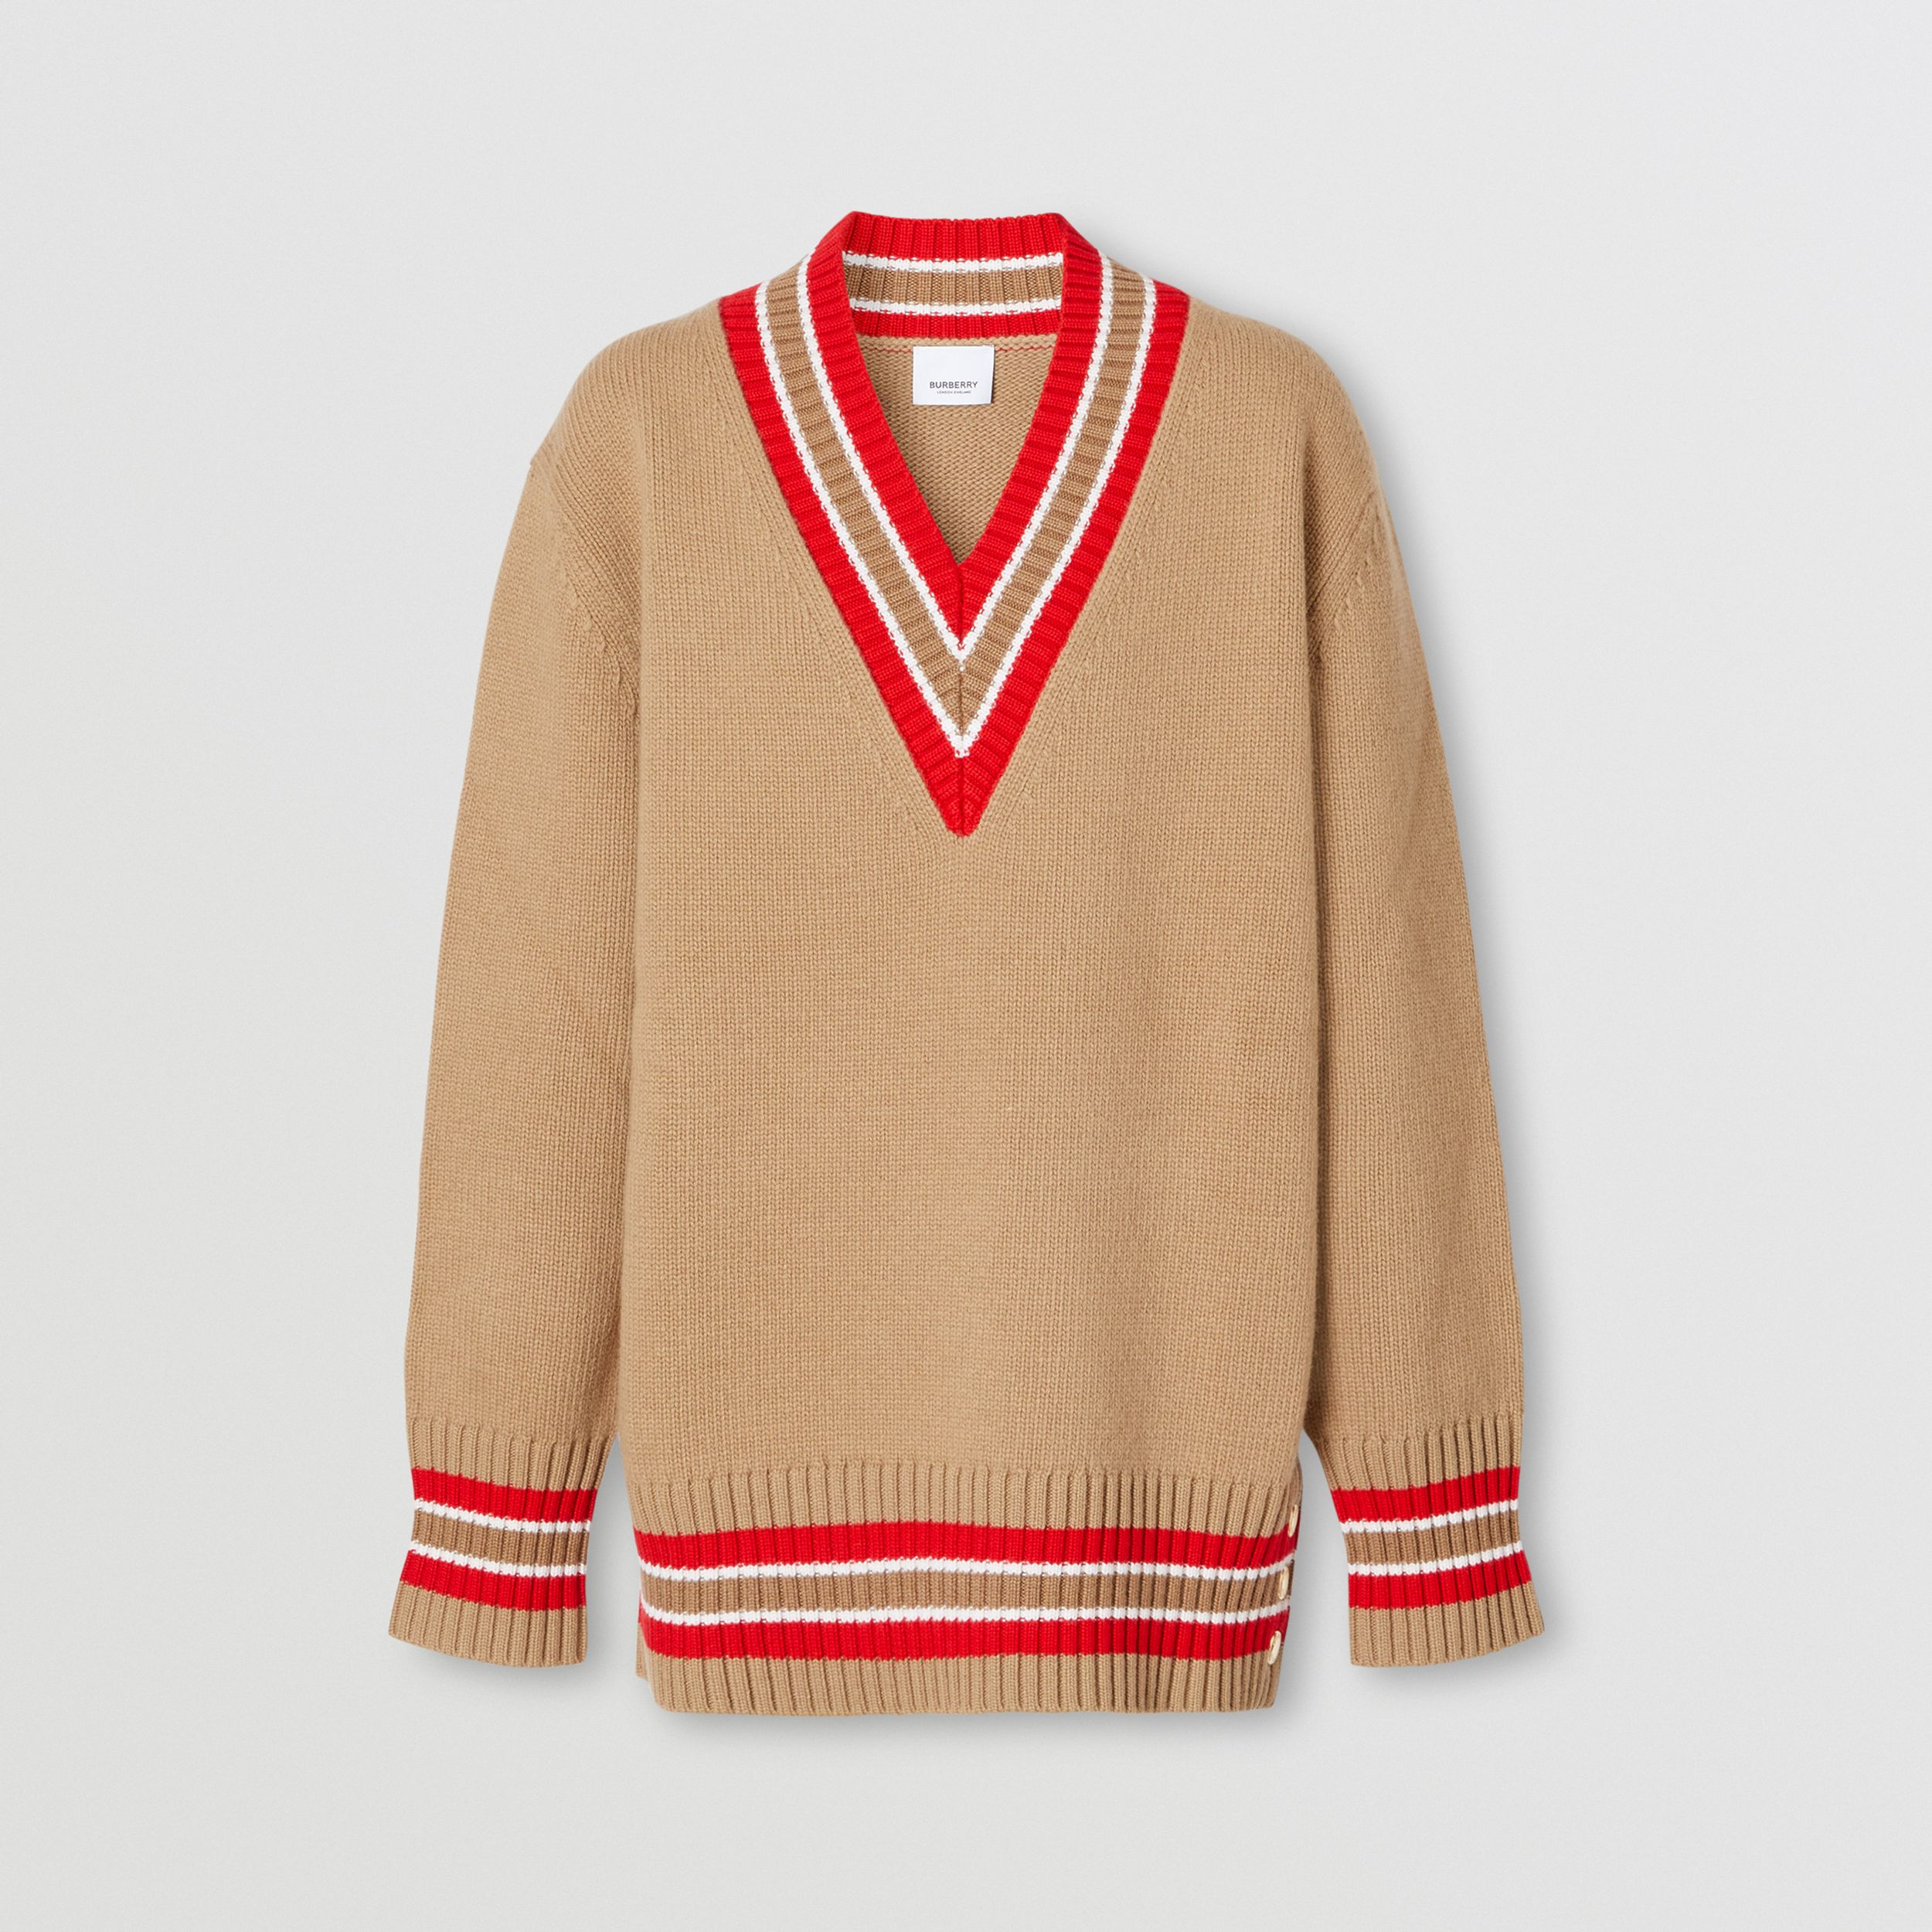 Wool Oversized Cricket Sweater in Camel - Women | Burberry - 4